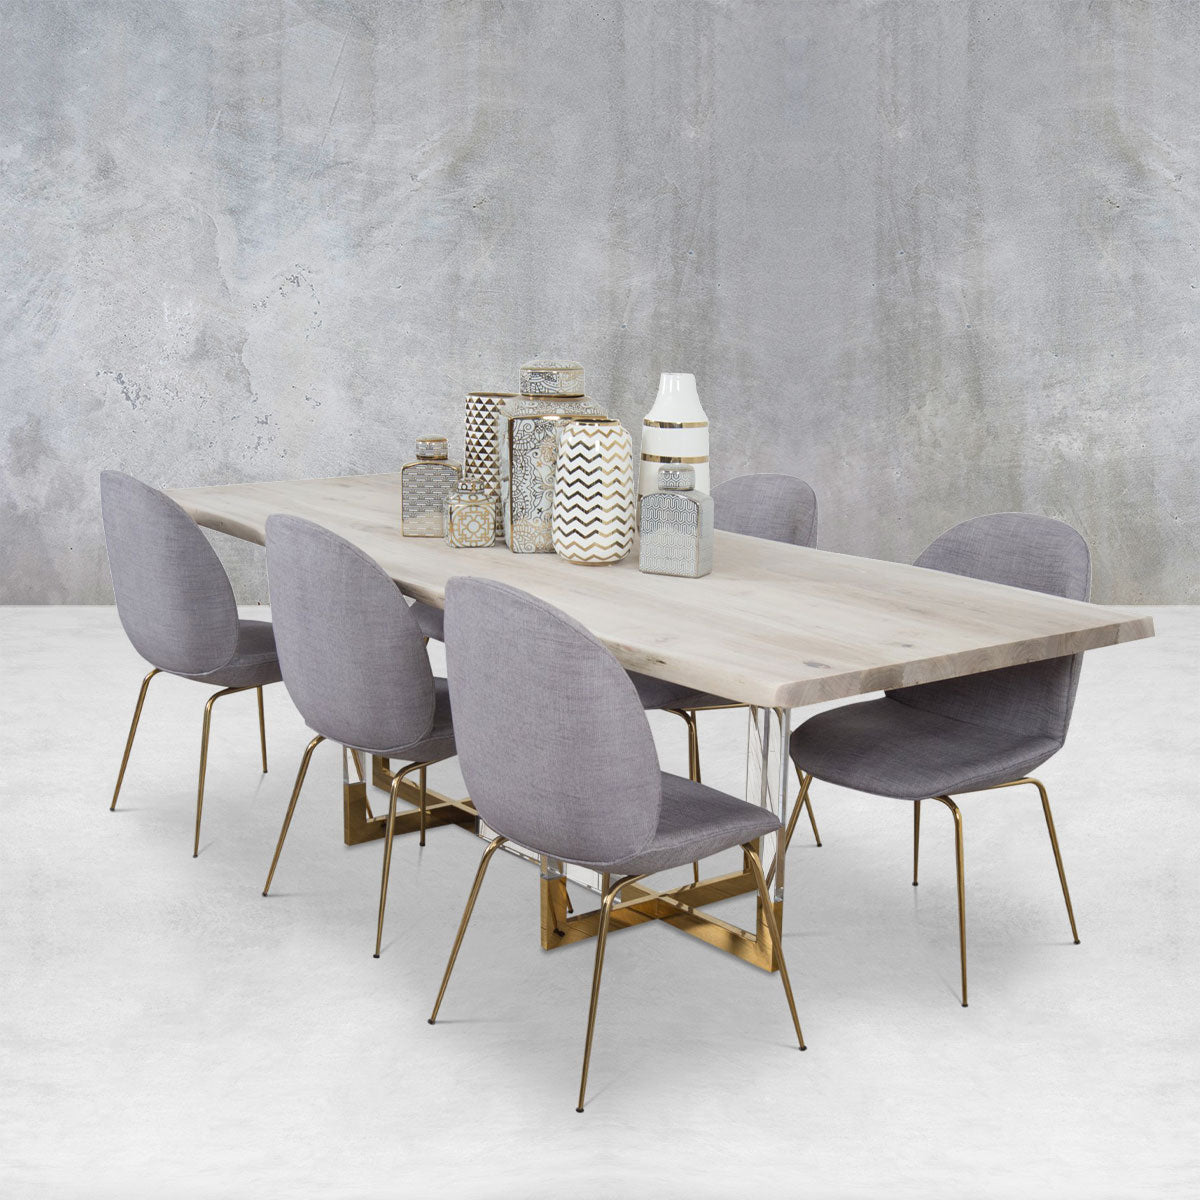 Sao Paulo Solid White Washed Live Edge Walnut Slab Dining Table